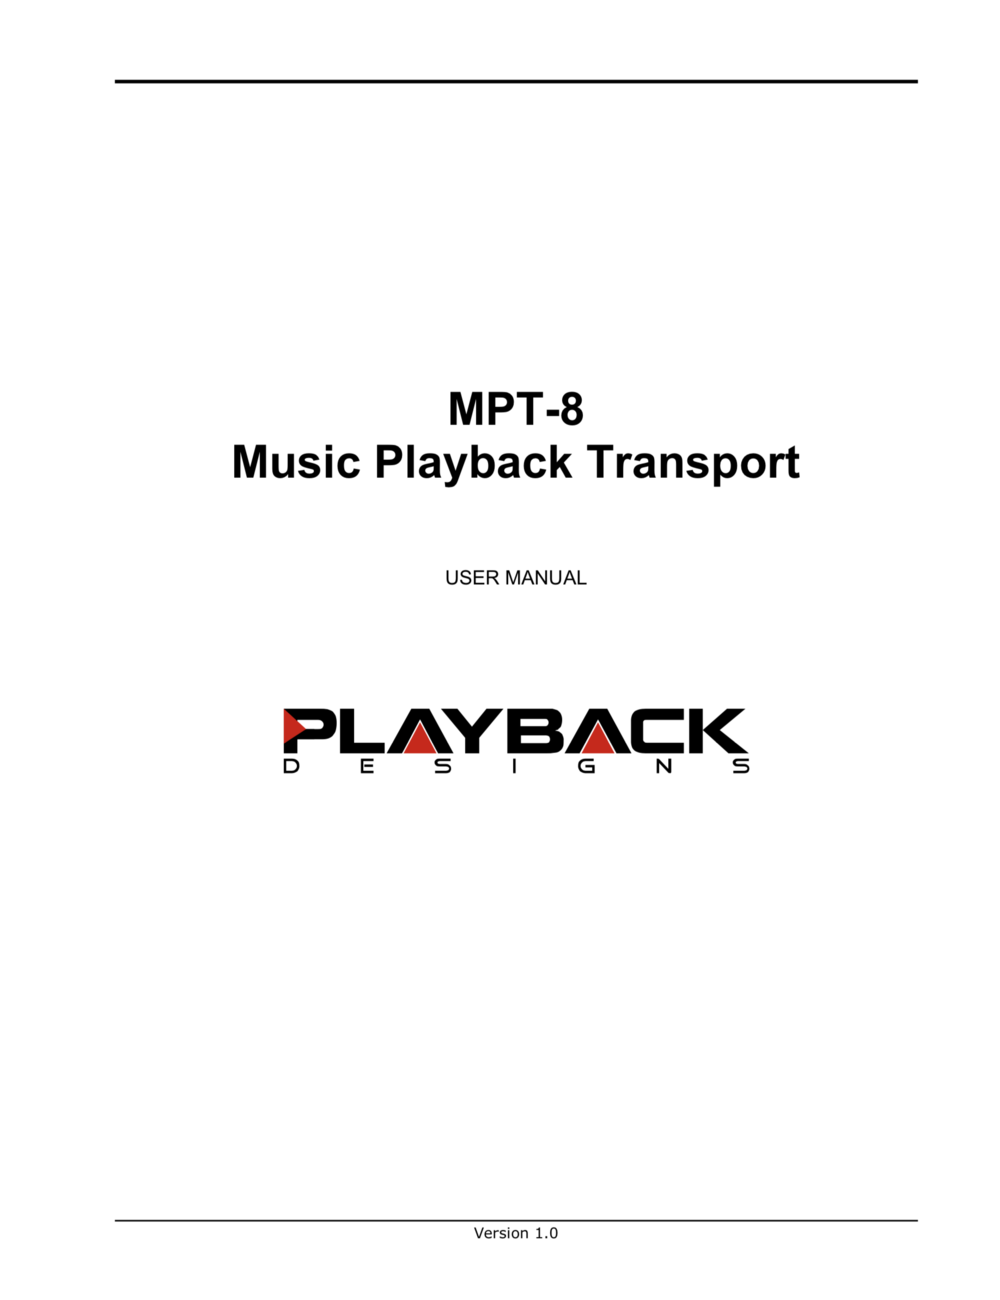 Download MPT-8 User Manual